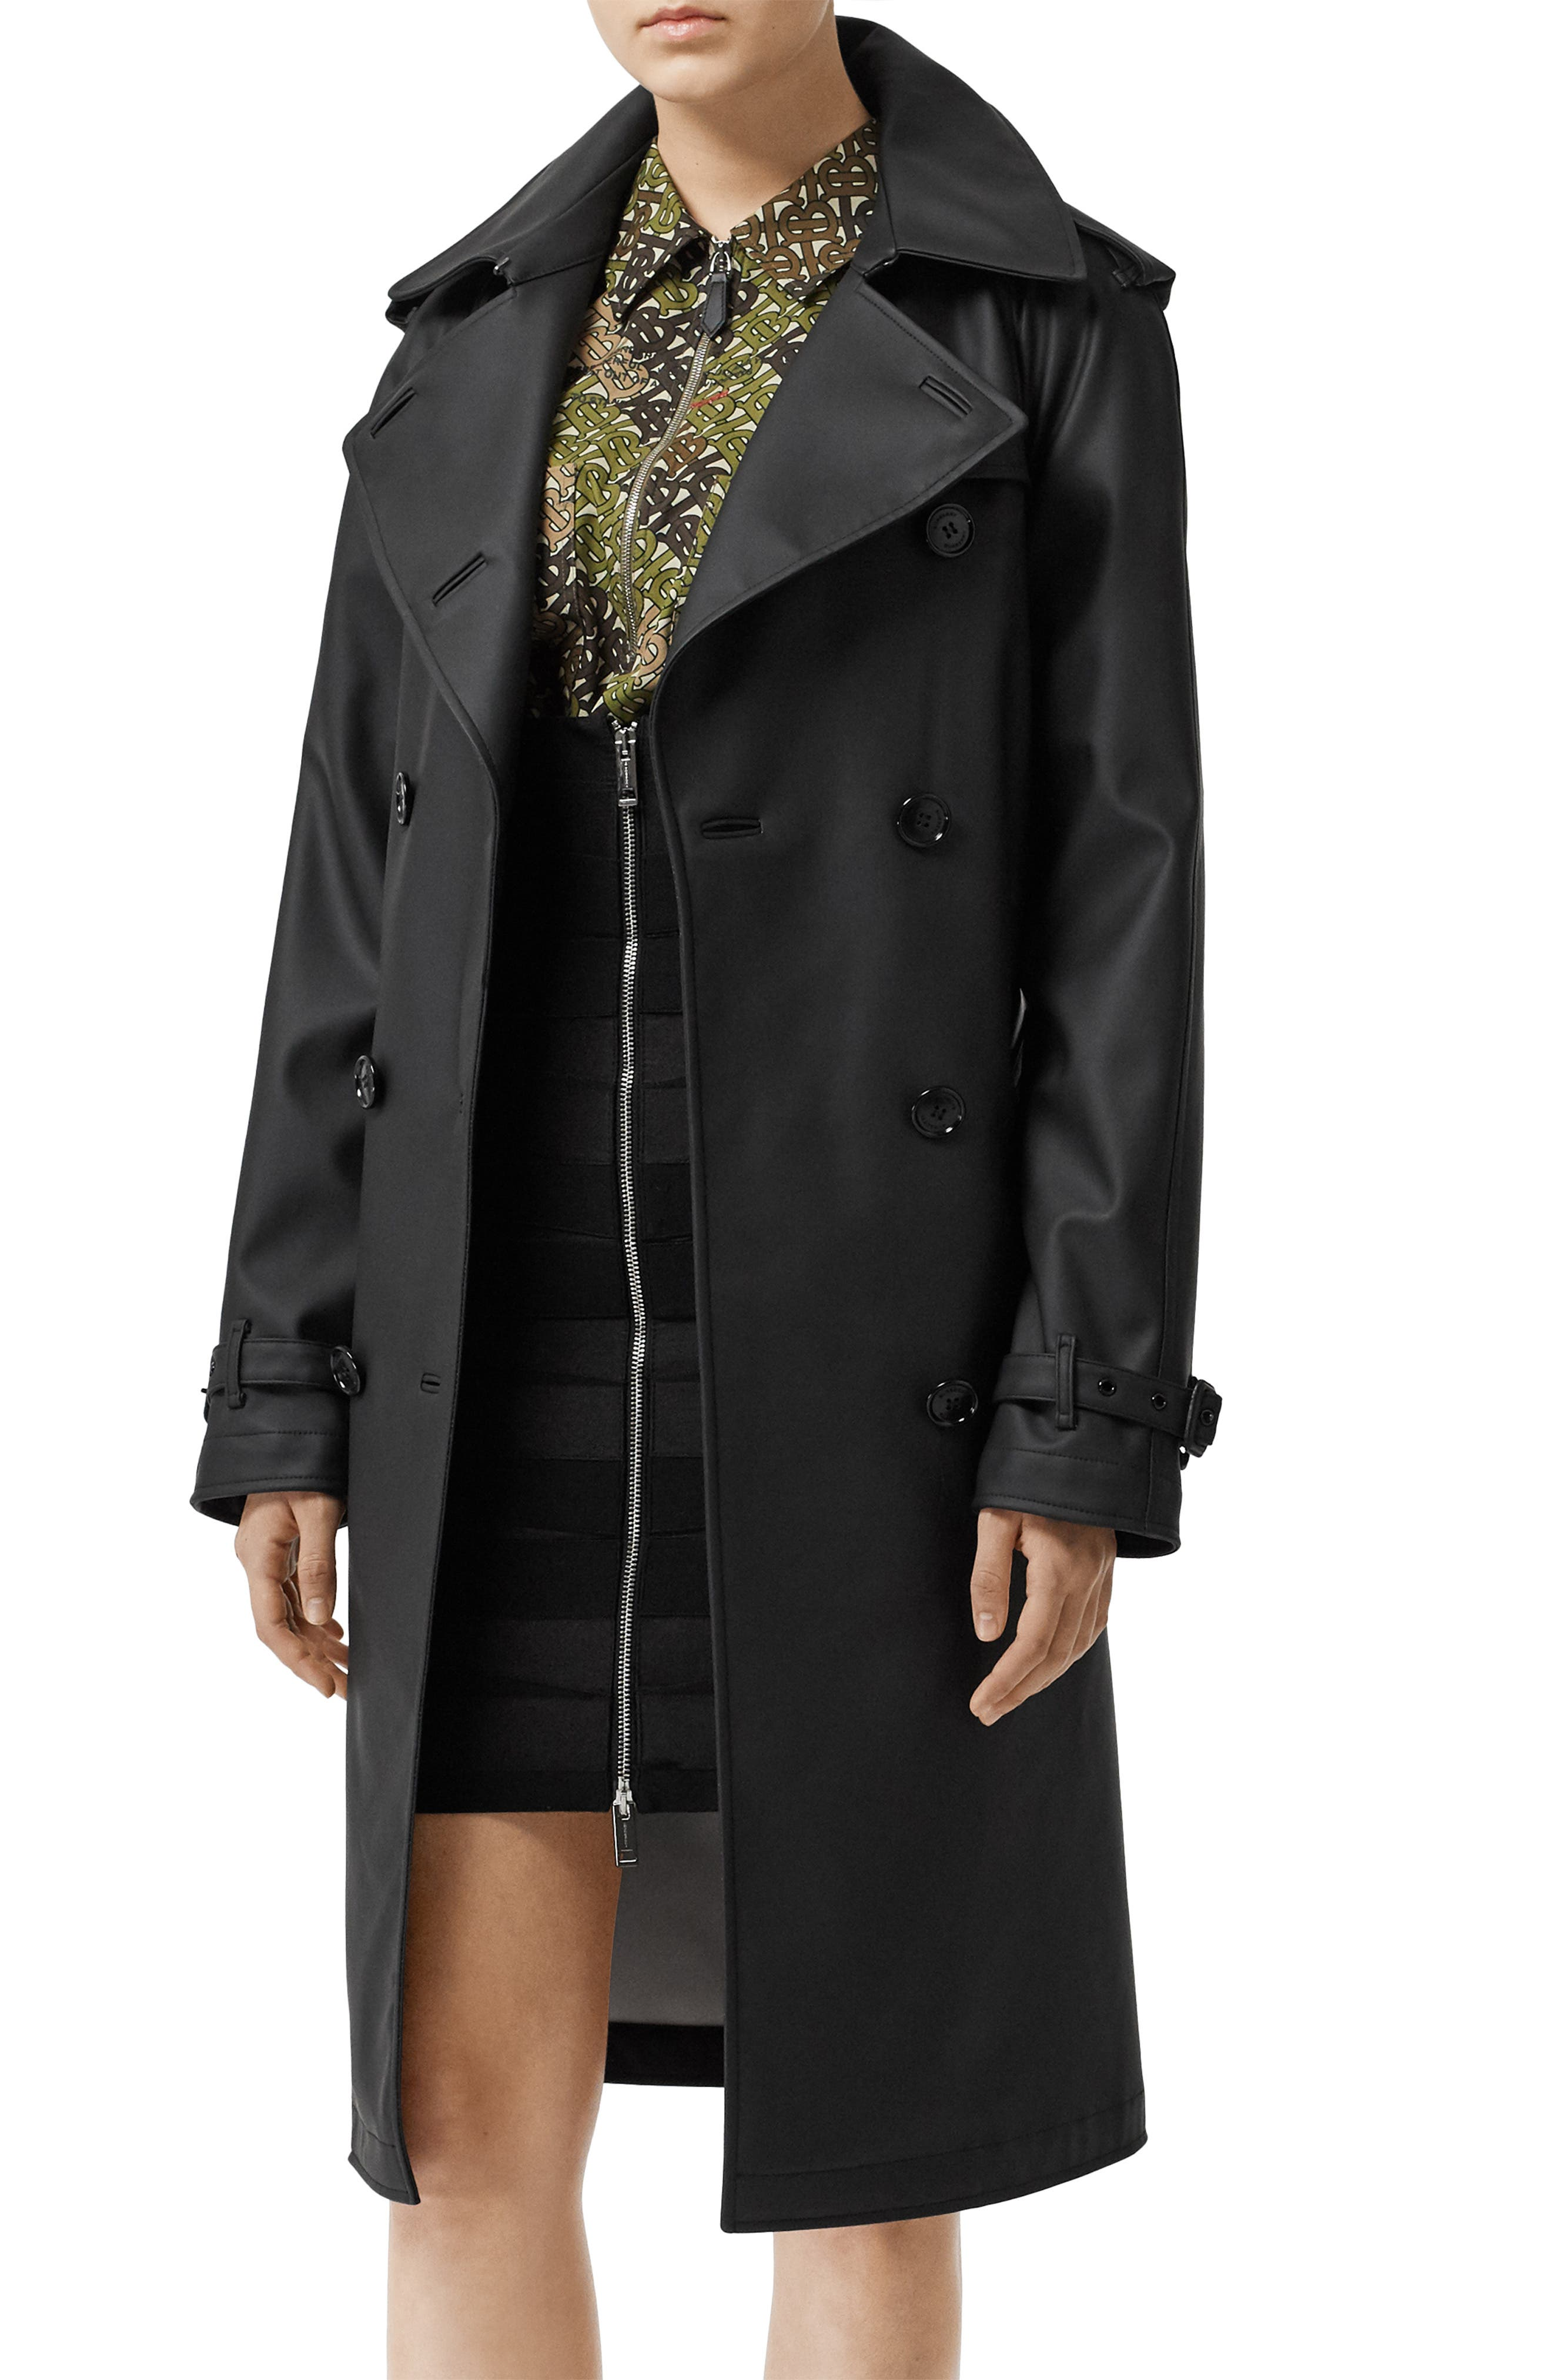 BURBERRY, Curradine Waterproof Rubberized Trench Coat, Alternate thumbnail 4, color, BLACK / WHITE